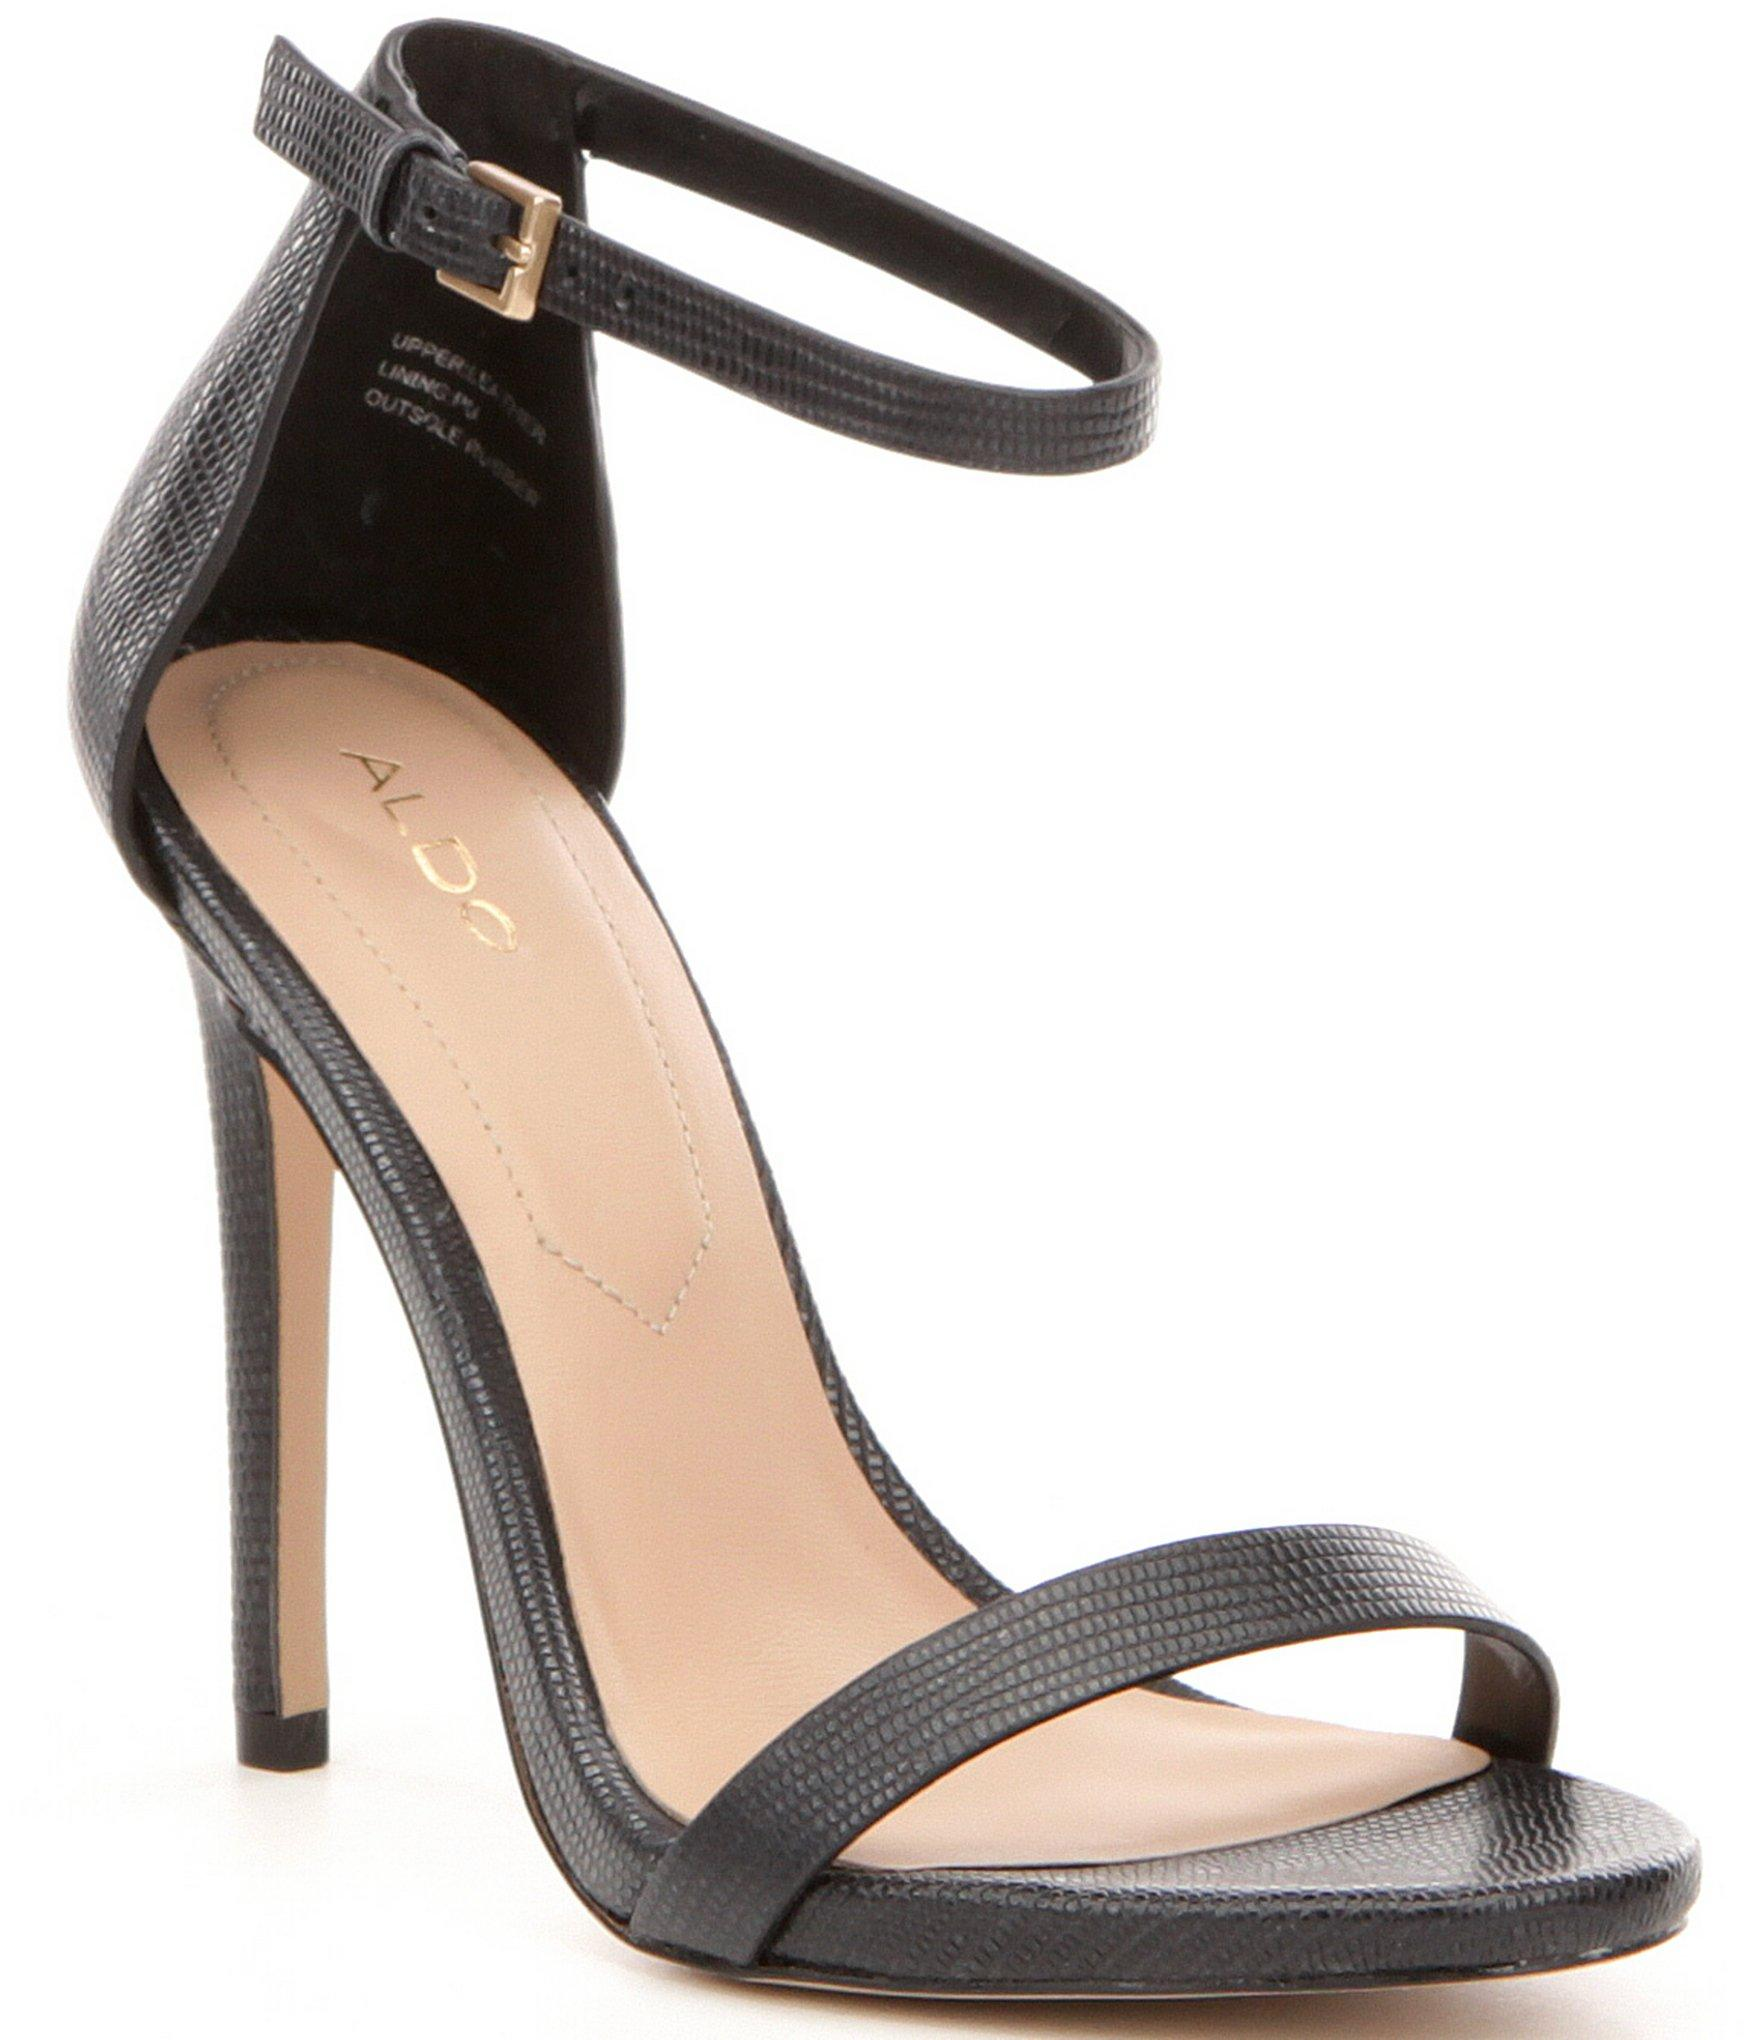 Dress up with a two-piece look in the Beella Ankle Strap Sandal from Madden Girl. Faux suede, smooth or fabric upper in a dress sandal style with an open toe/5(40).